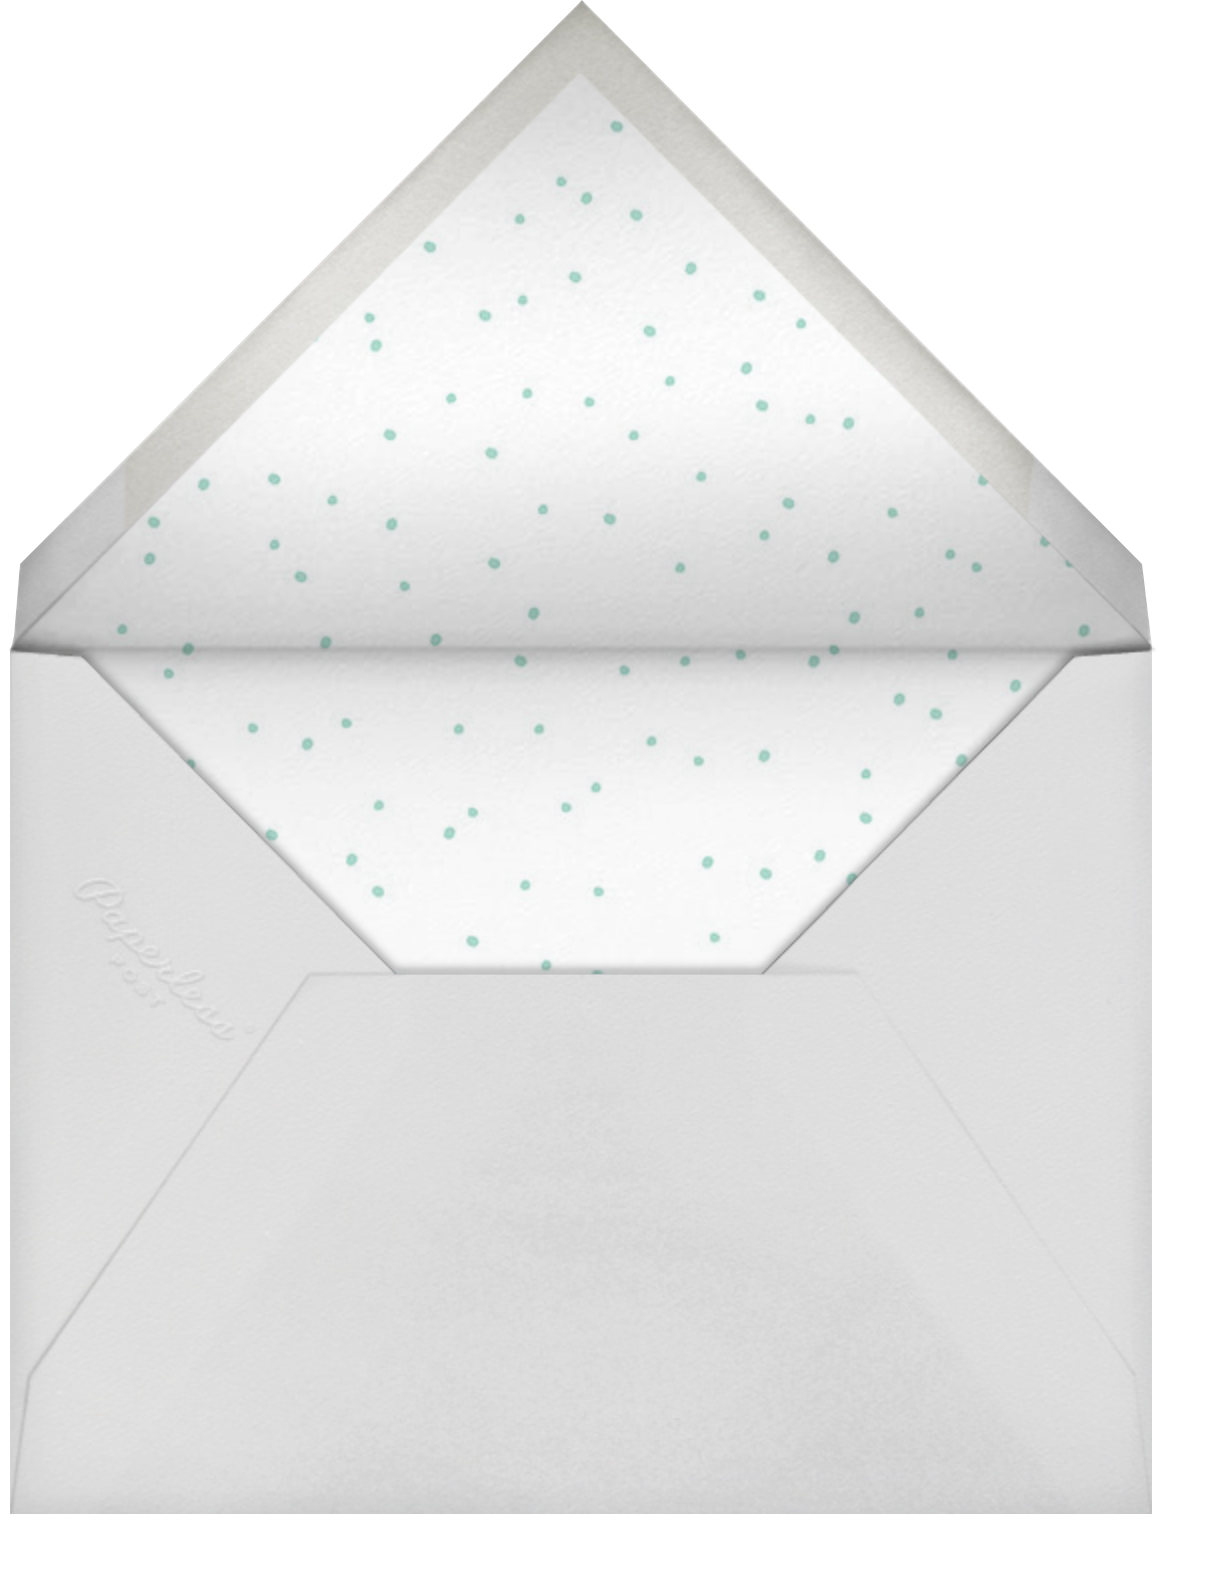 With Hugs and Kisses (Double-Sided) - Silver - Linda and Harriett - Save the date - envelope back